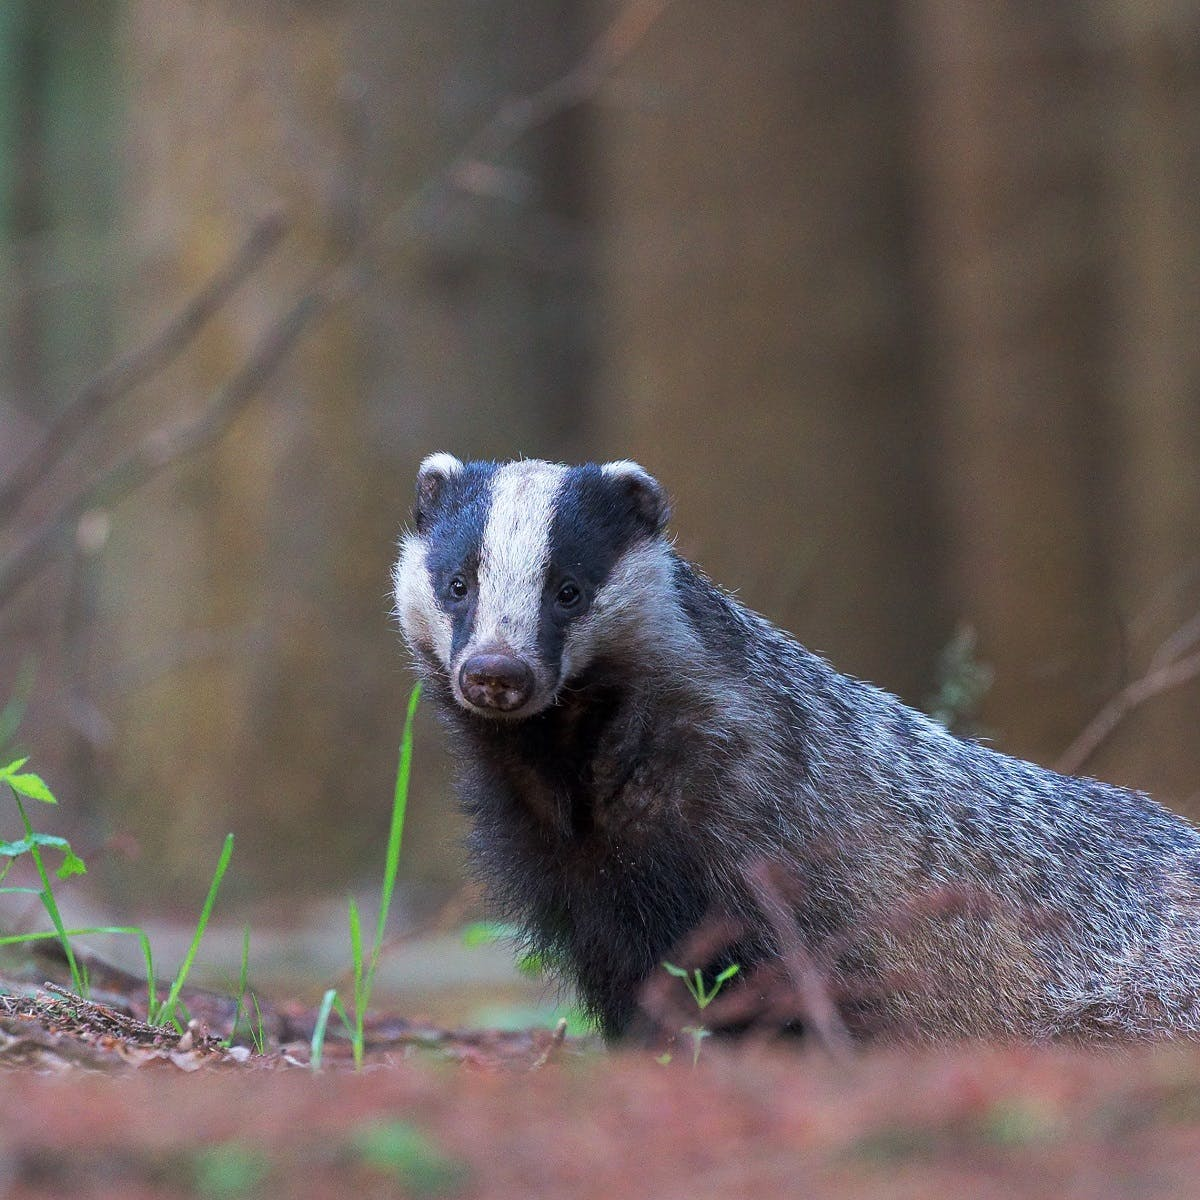 A European badger in an irish woodland. The most misconceived and persecuted member of wildlife in Ireland.